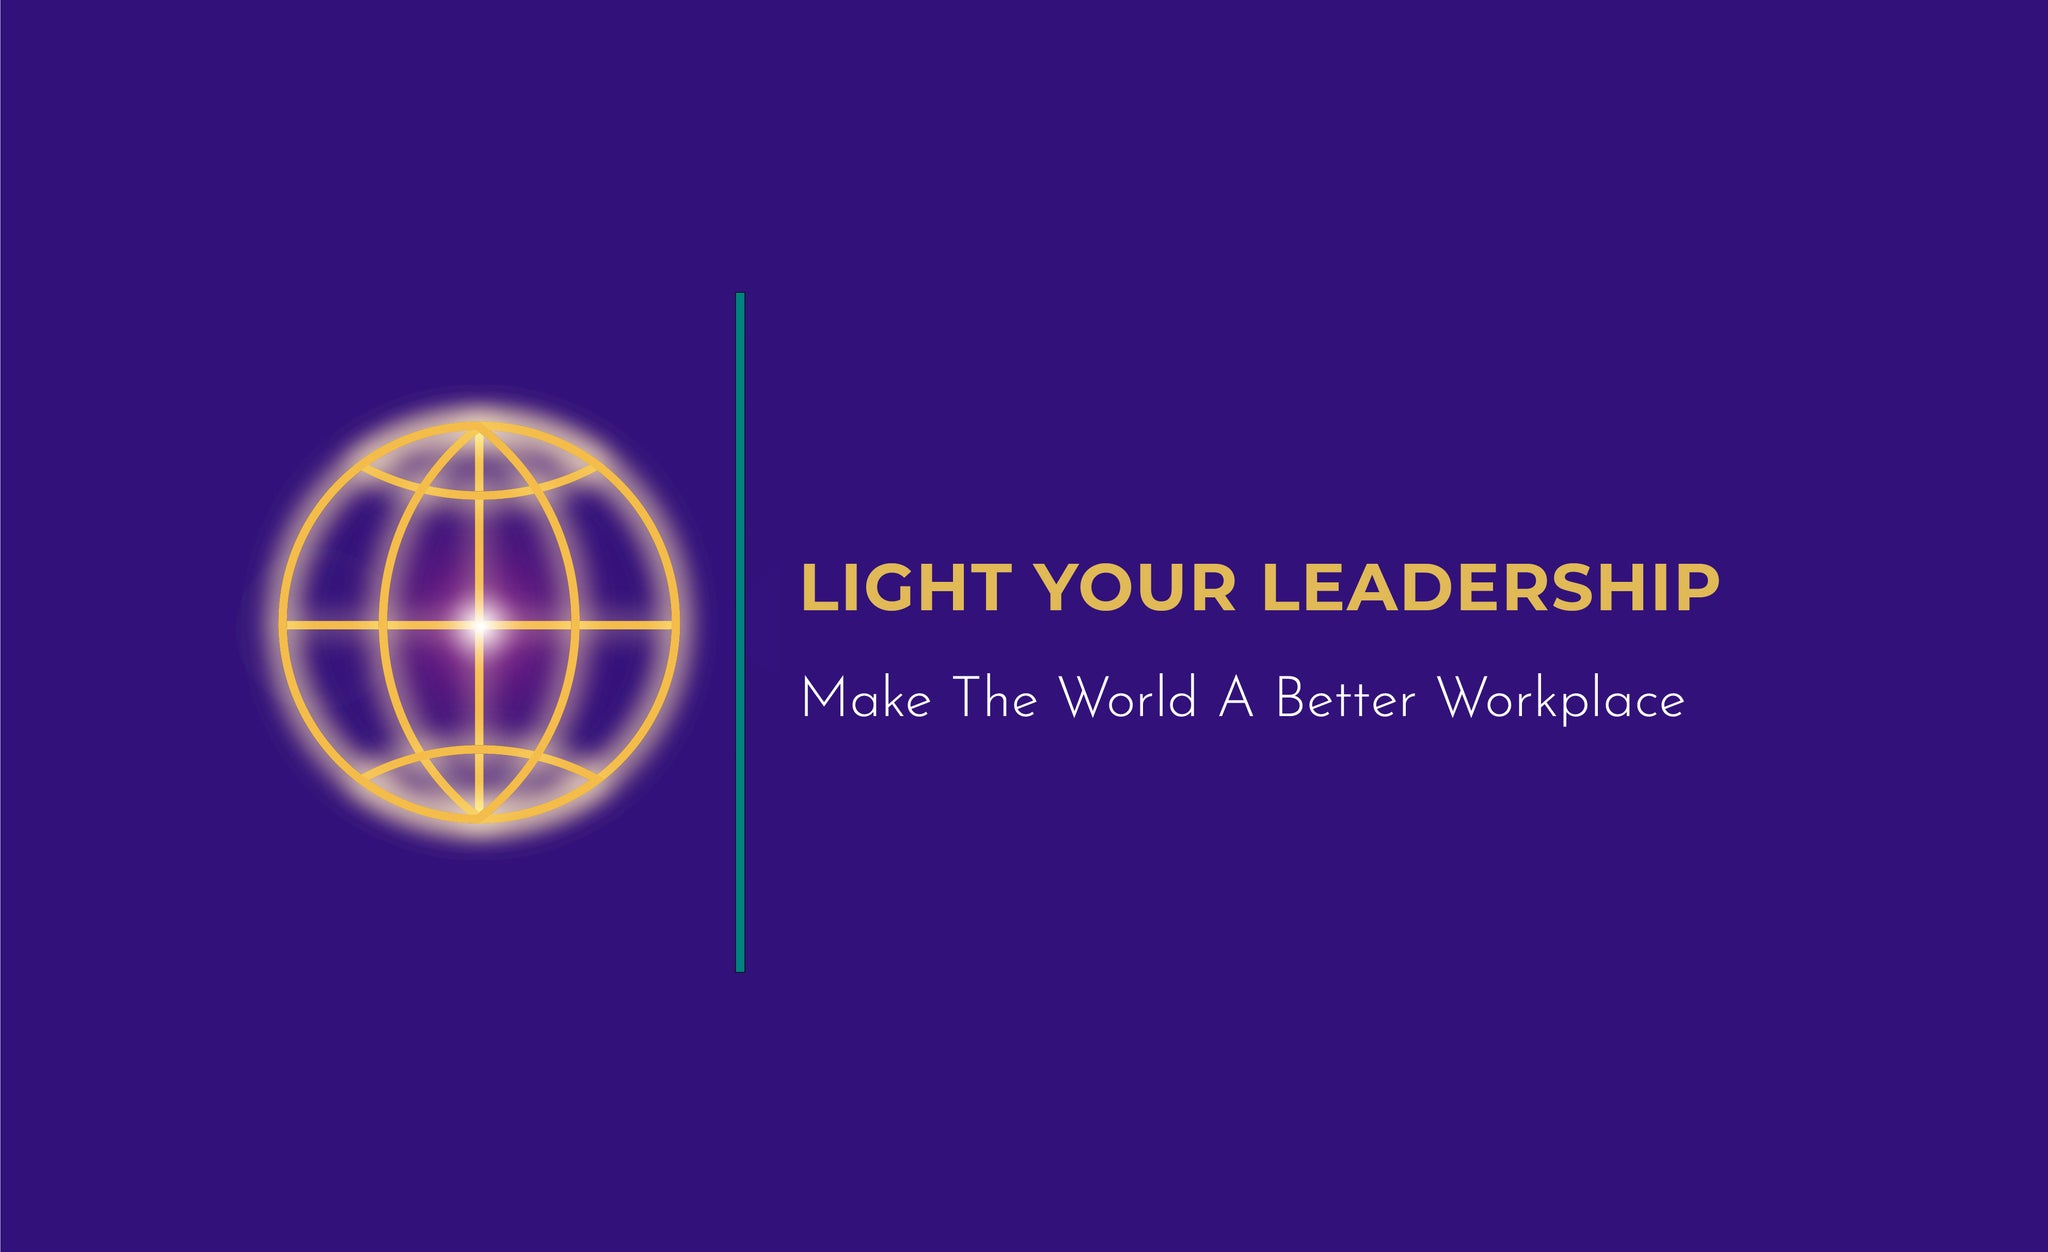 Light Your Leadership  - Make the world a better place